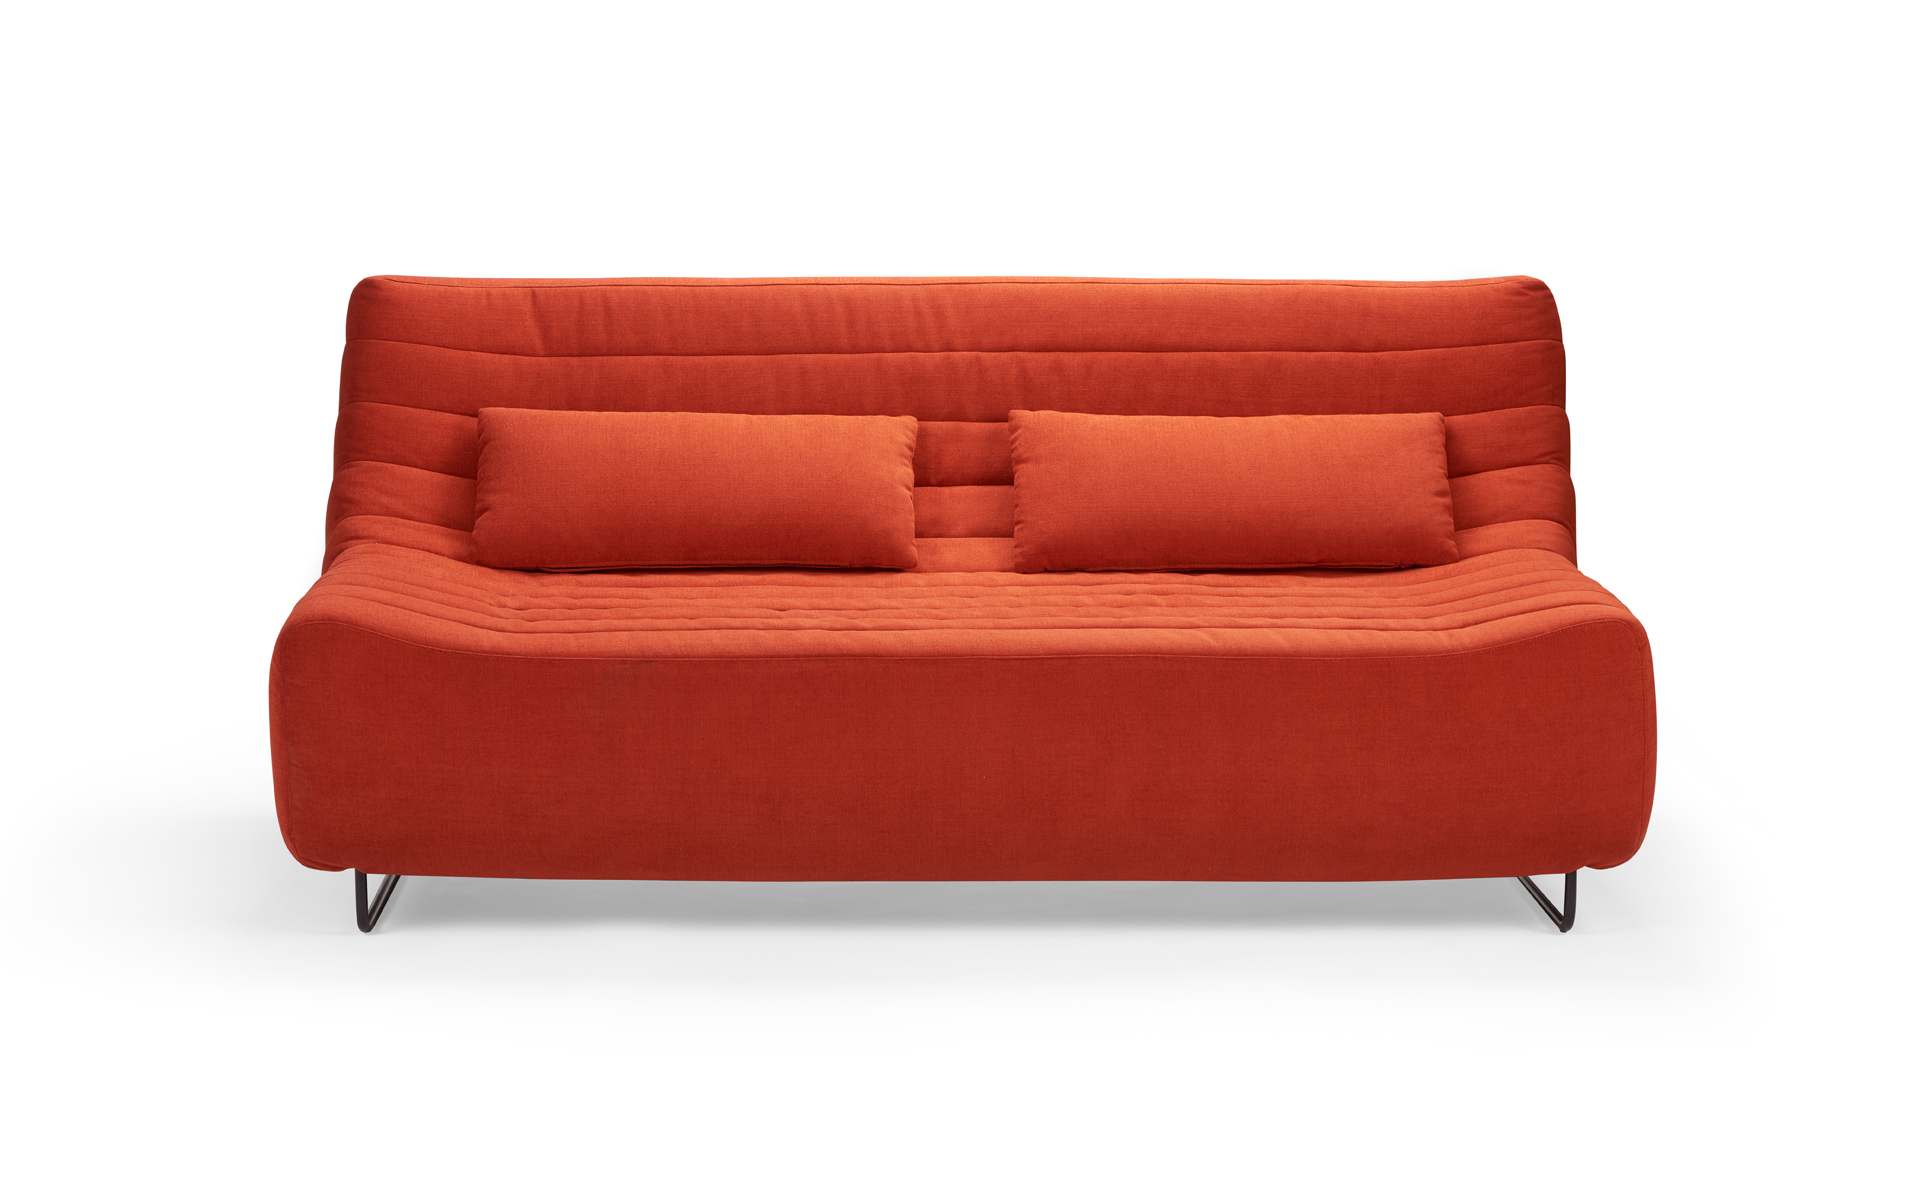 Marvelous Riffel Sofa Design By Sven Dogs For Rossin Sven Dogs Design Alphanode Cool Chair Designs And Ideas Alphanodeonline